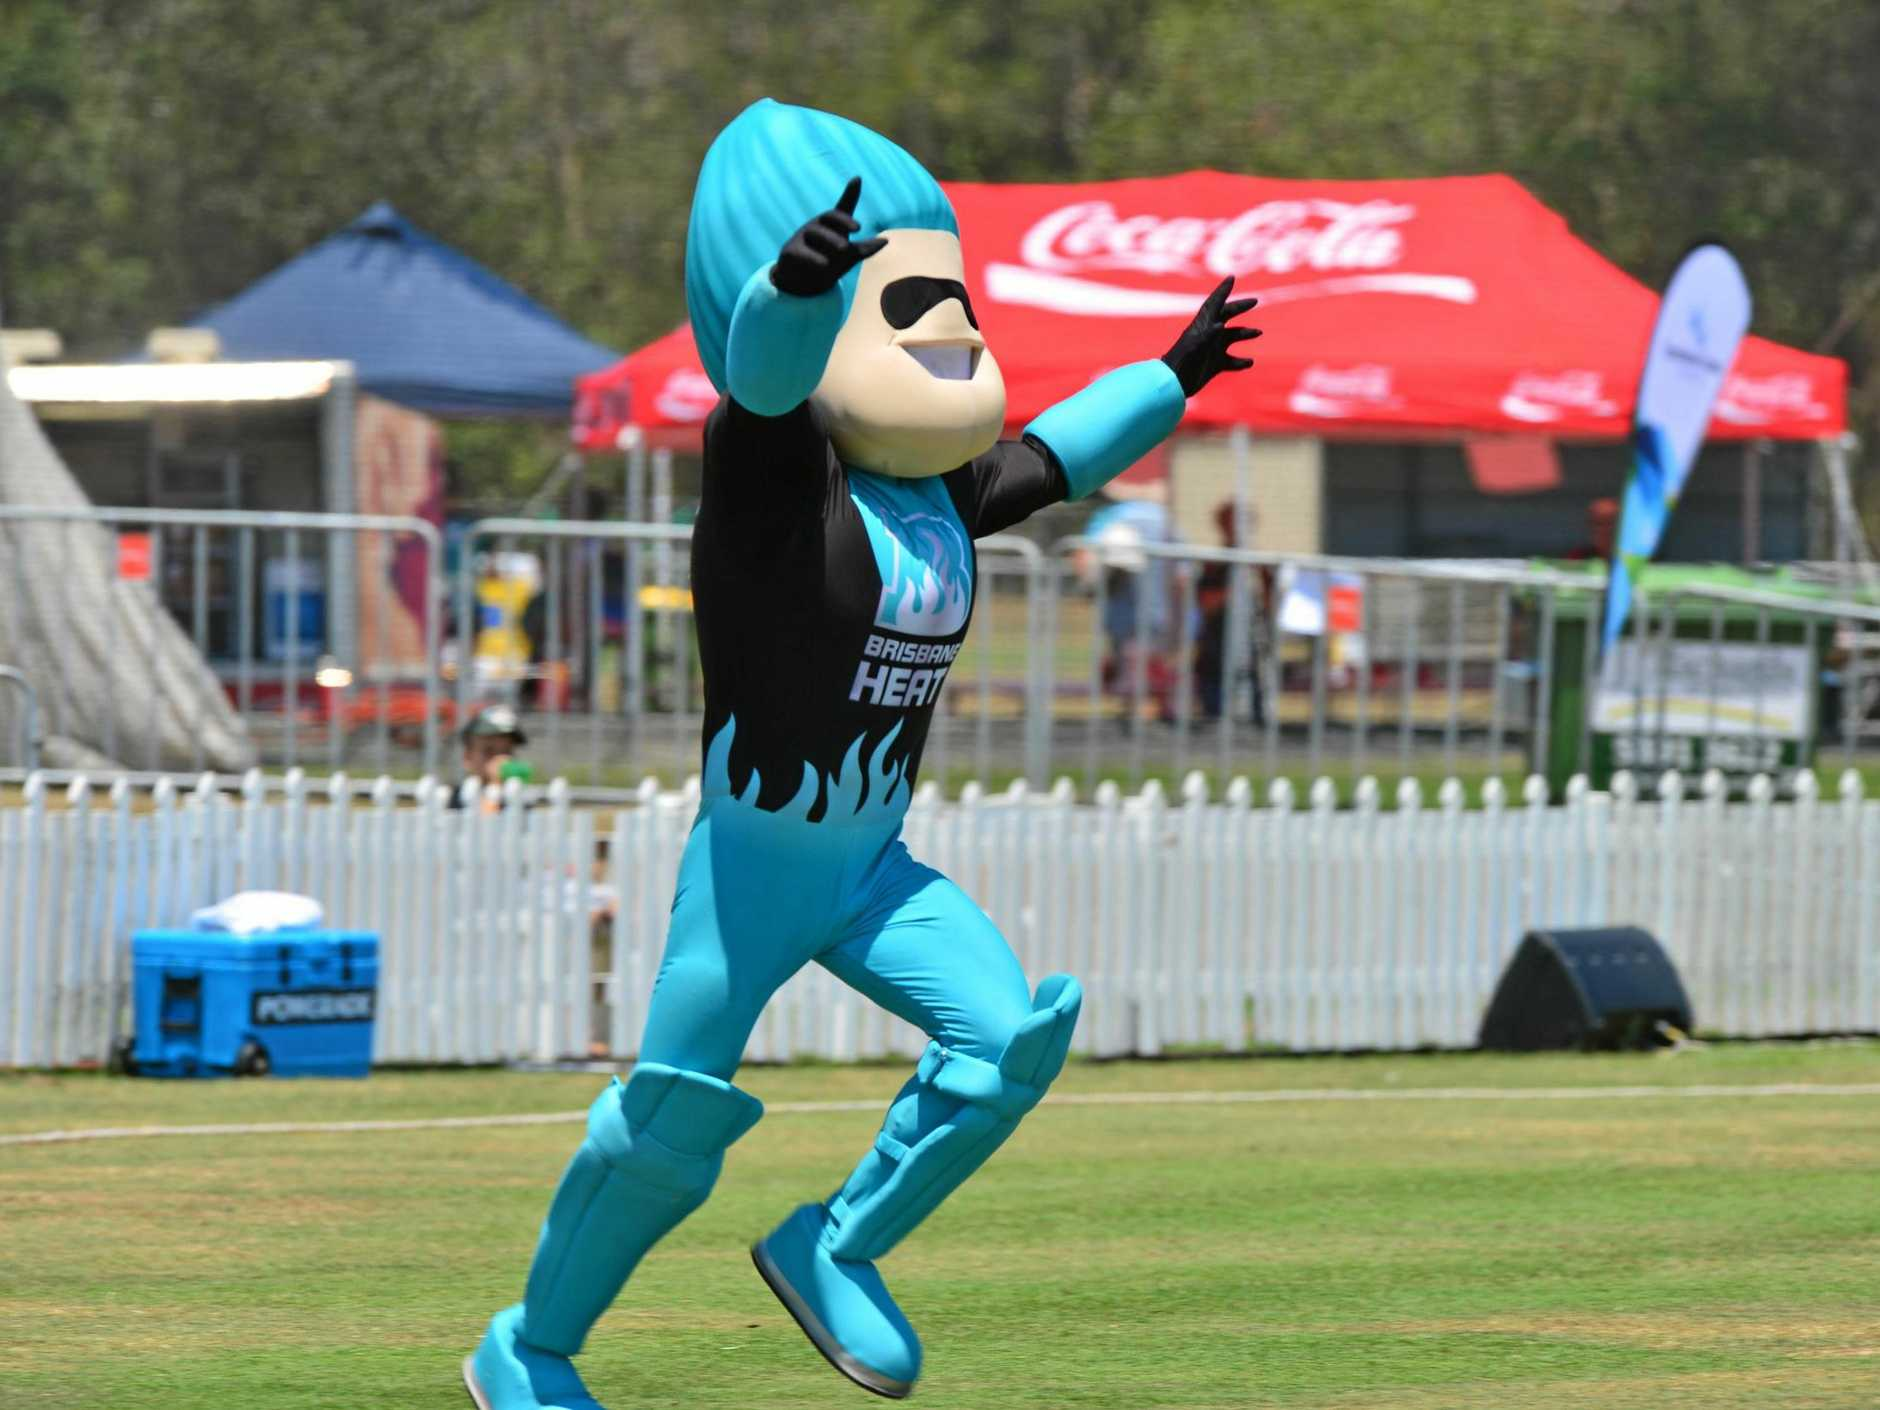 Brisbane Heat mascot Heater will make a guest appearance at the charity match in Rockhampton on Thursday.